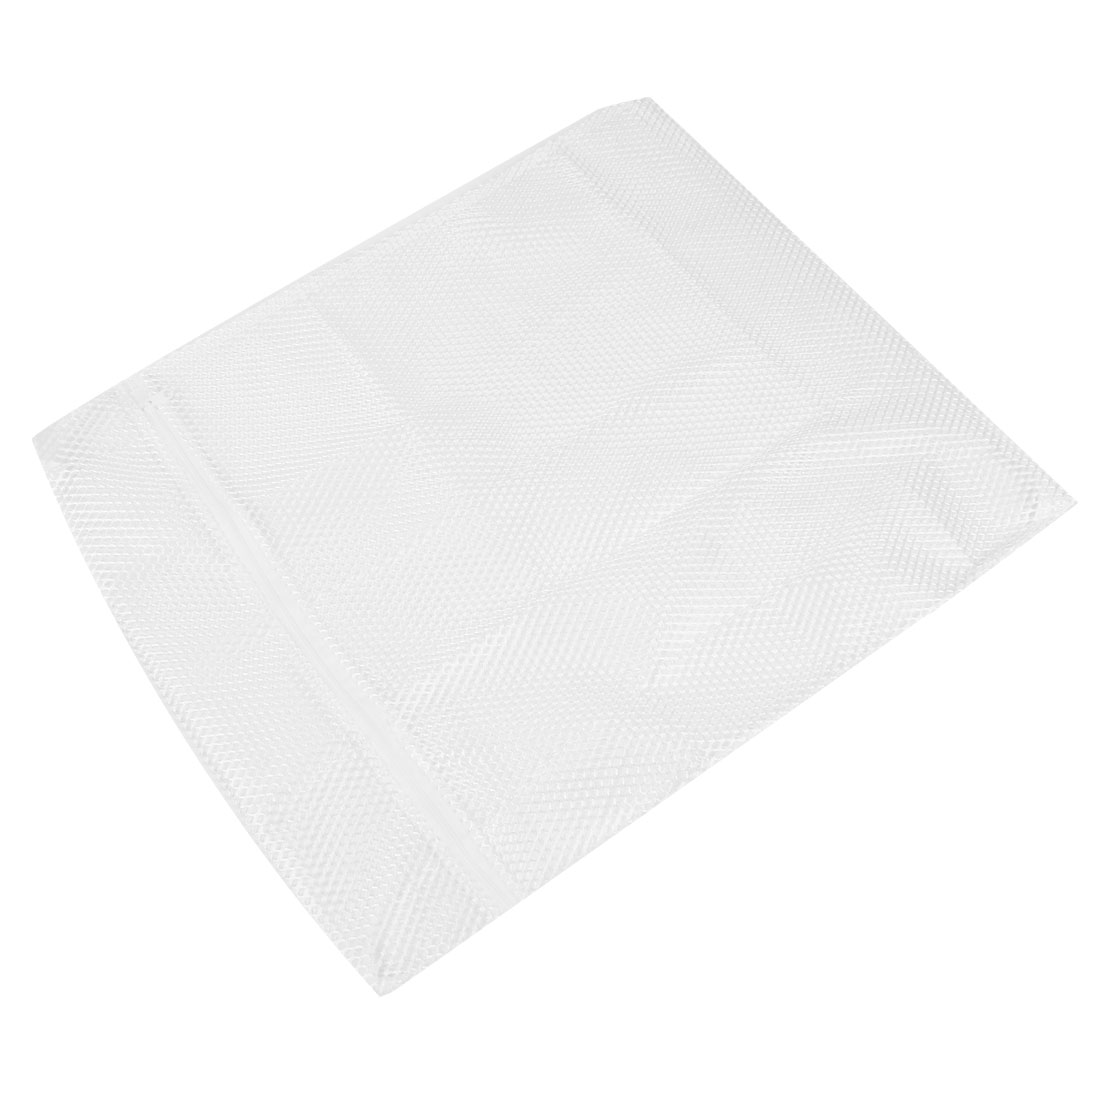 White Nylon Mesh Lingerie Bra Clothes Zippered Washing Wash Bag 20\